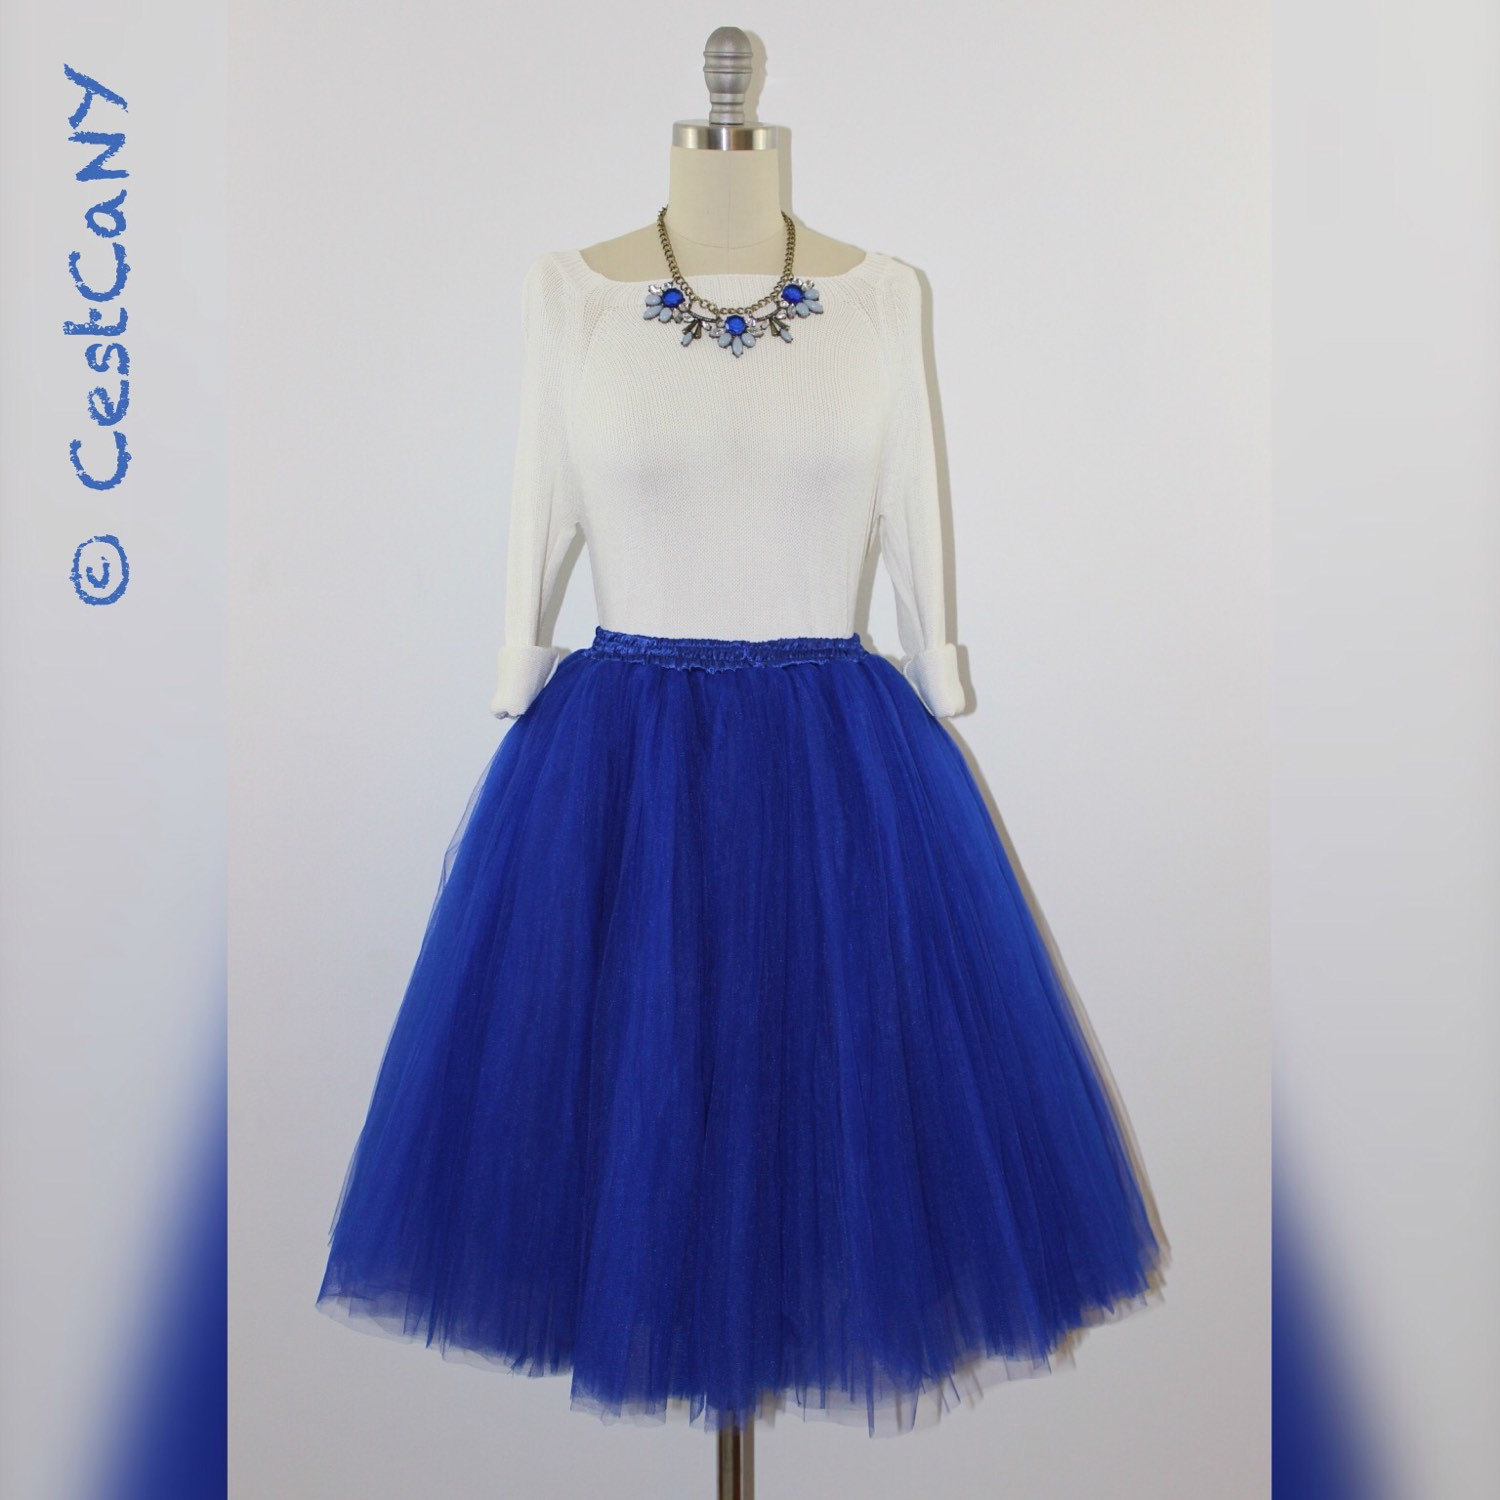 Shop for and buy puffy skirts online at Macy's. Find puffy skirts at Macy's. Macy's Presents: The Edit- A curated mix of fashion and inspiration Check It Out. STS Blue (1) Sunday Riley (1) Superdry (2) Swim Solutions (2) T Tahari (8) Tahari ASL (9) Thalia Sodi (20) The Edit By .